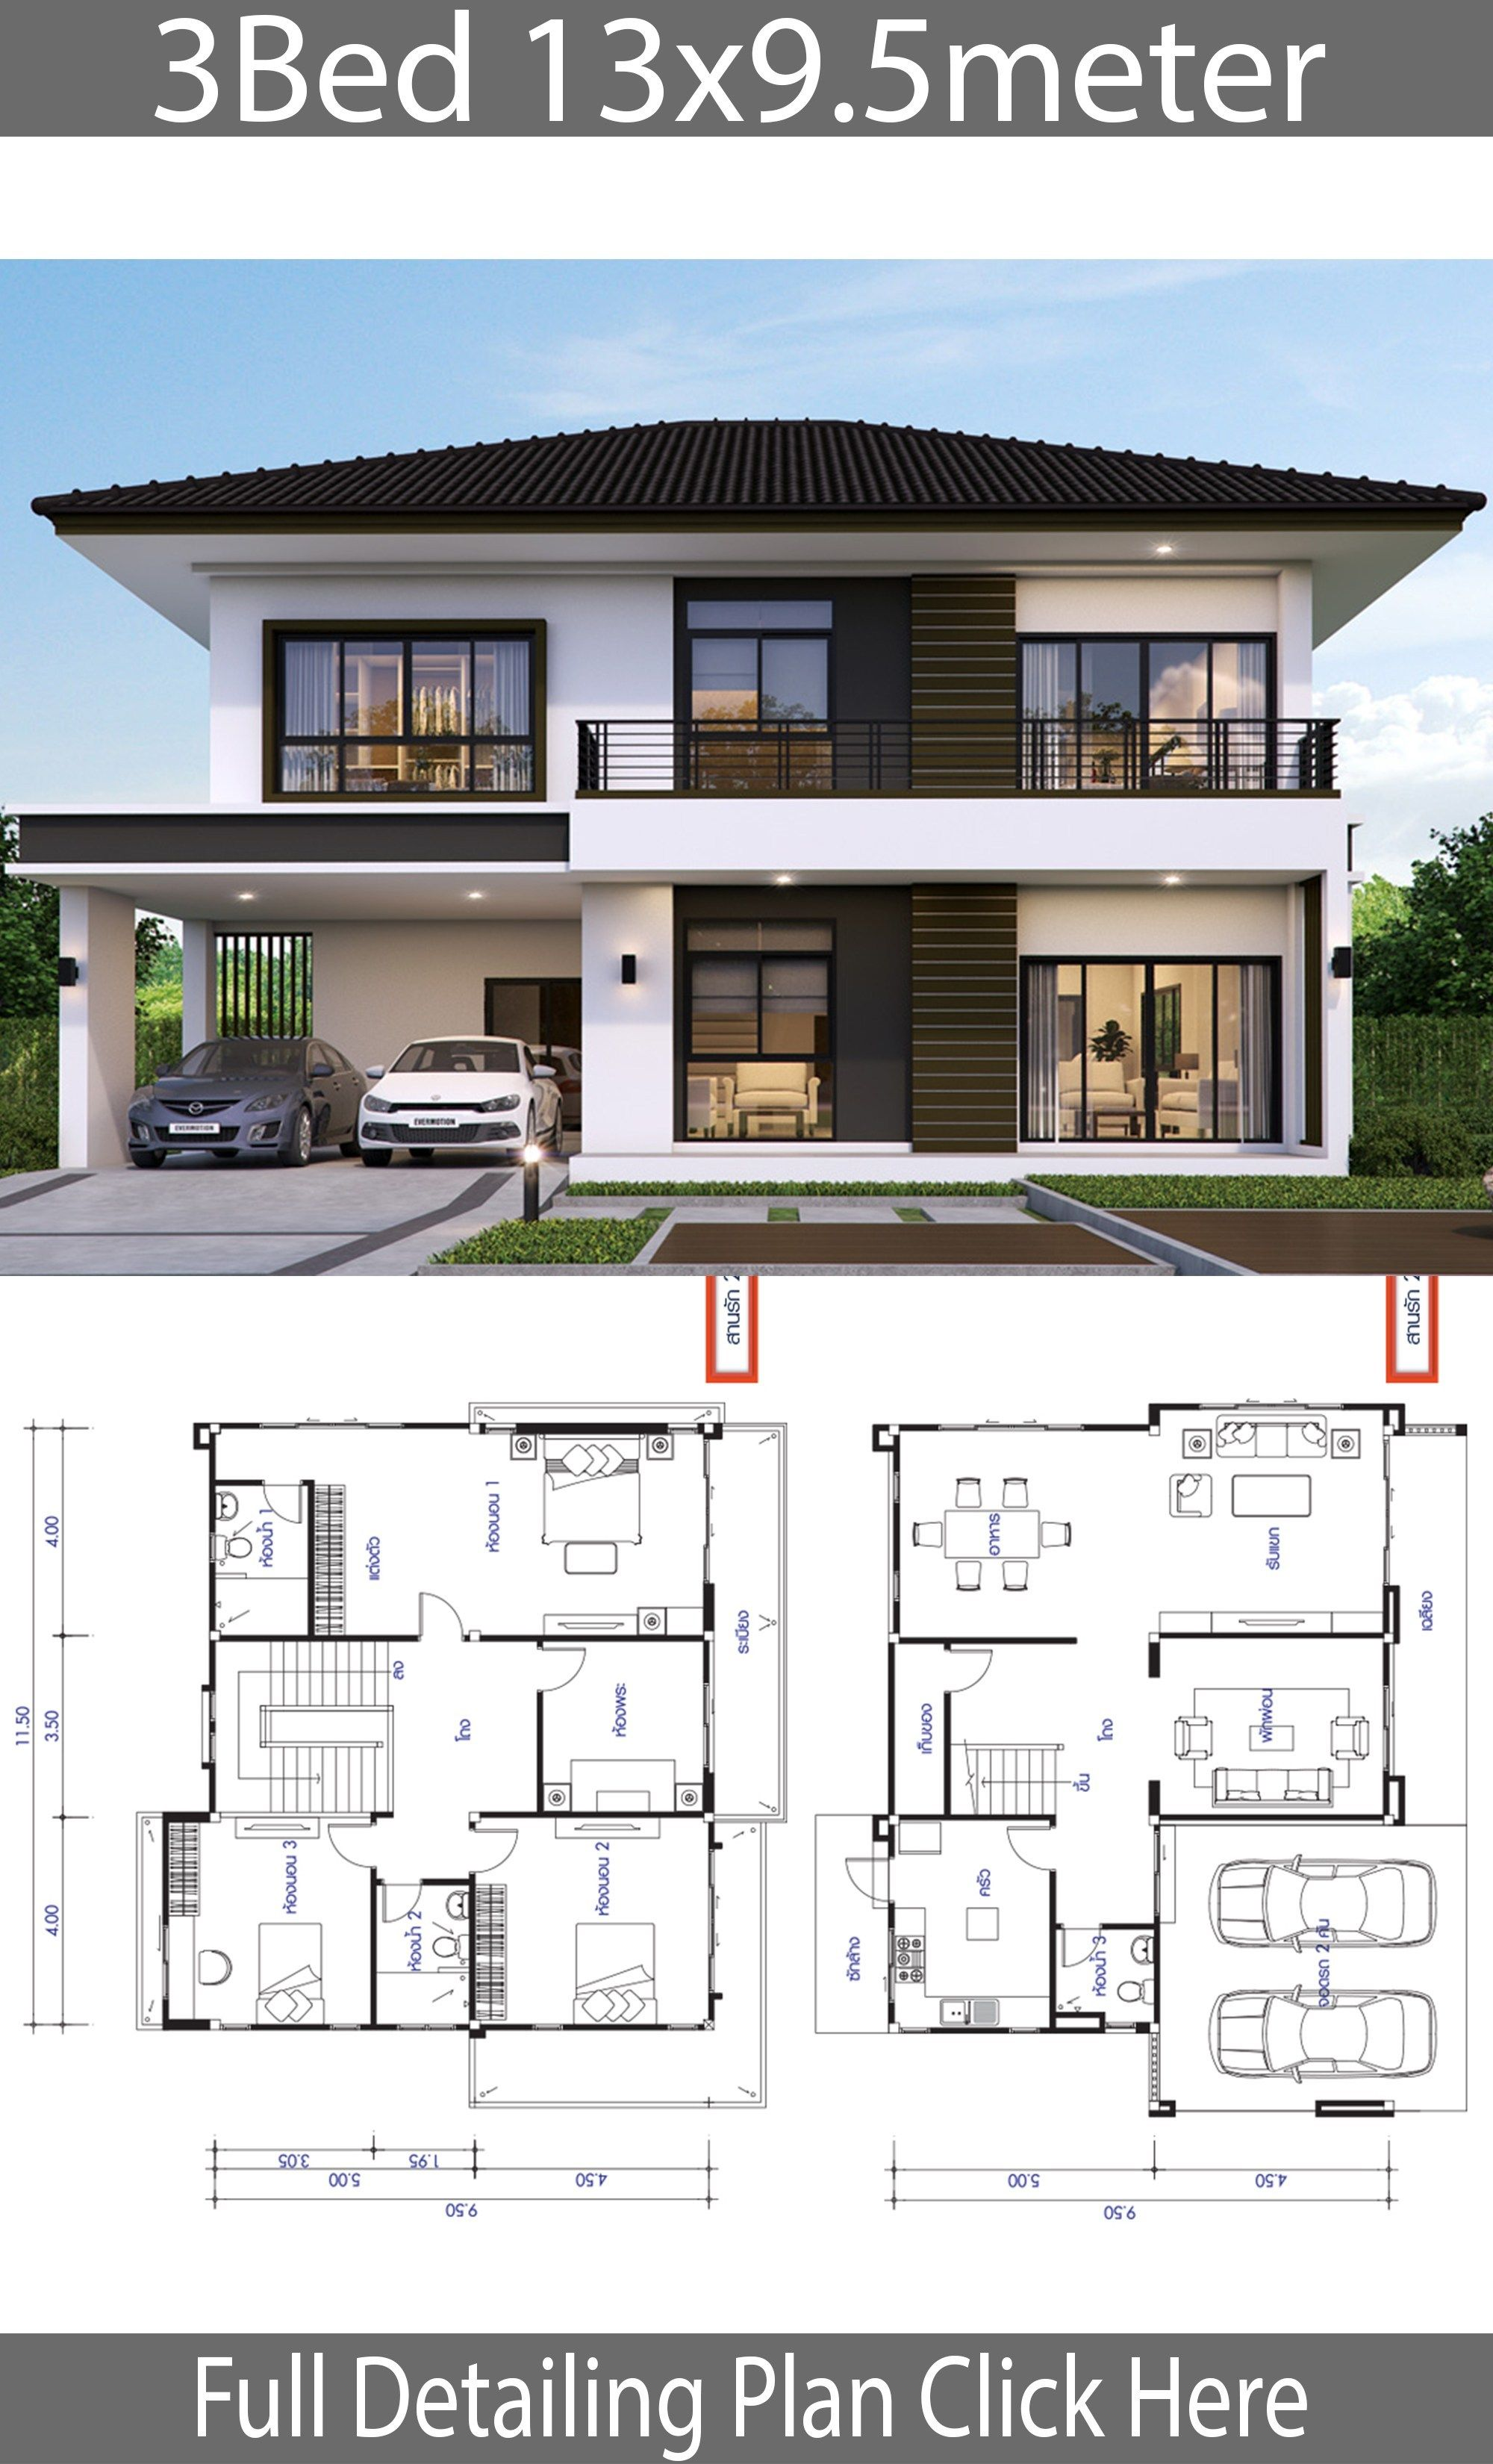 House Design Plan 13x9 5m With 3 Bedrooms Home Design With Plan Architectural House Plans Modern House Plans House Designs Exterior